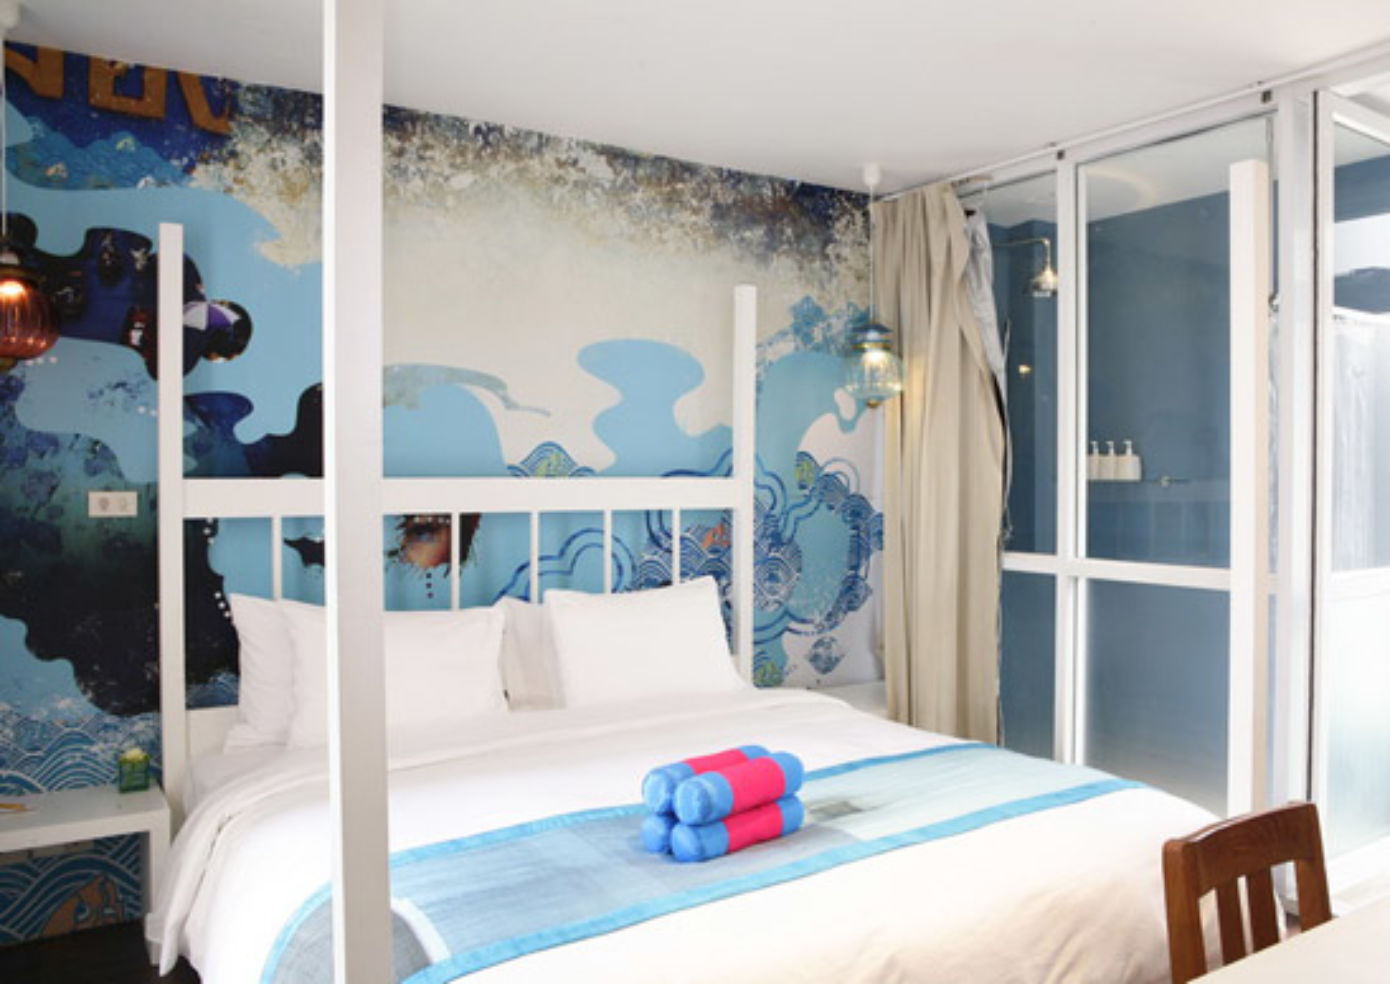 The Blue room at Seven hotel